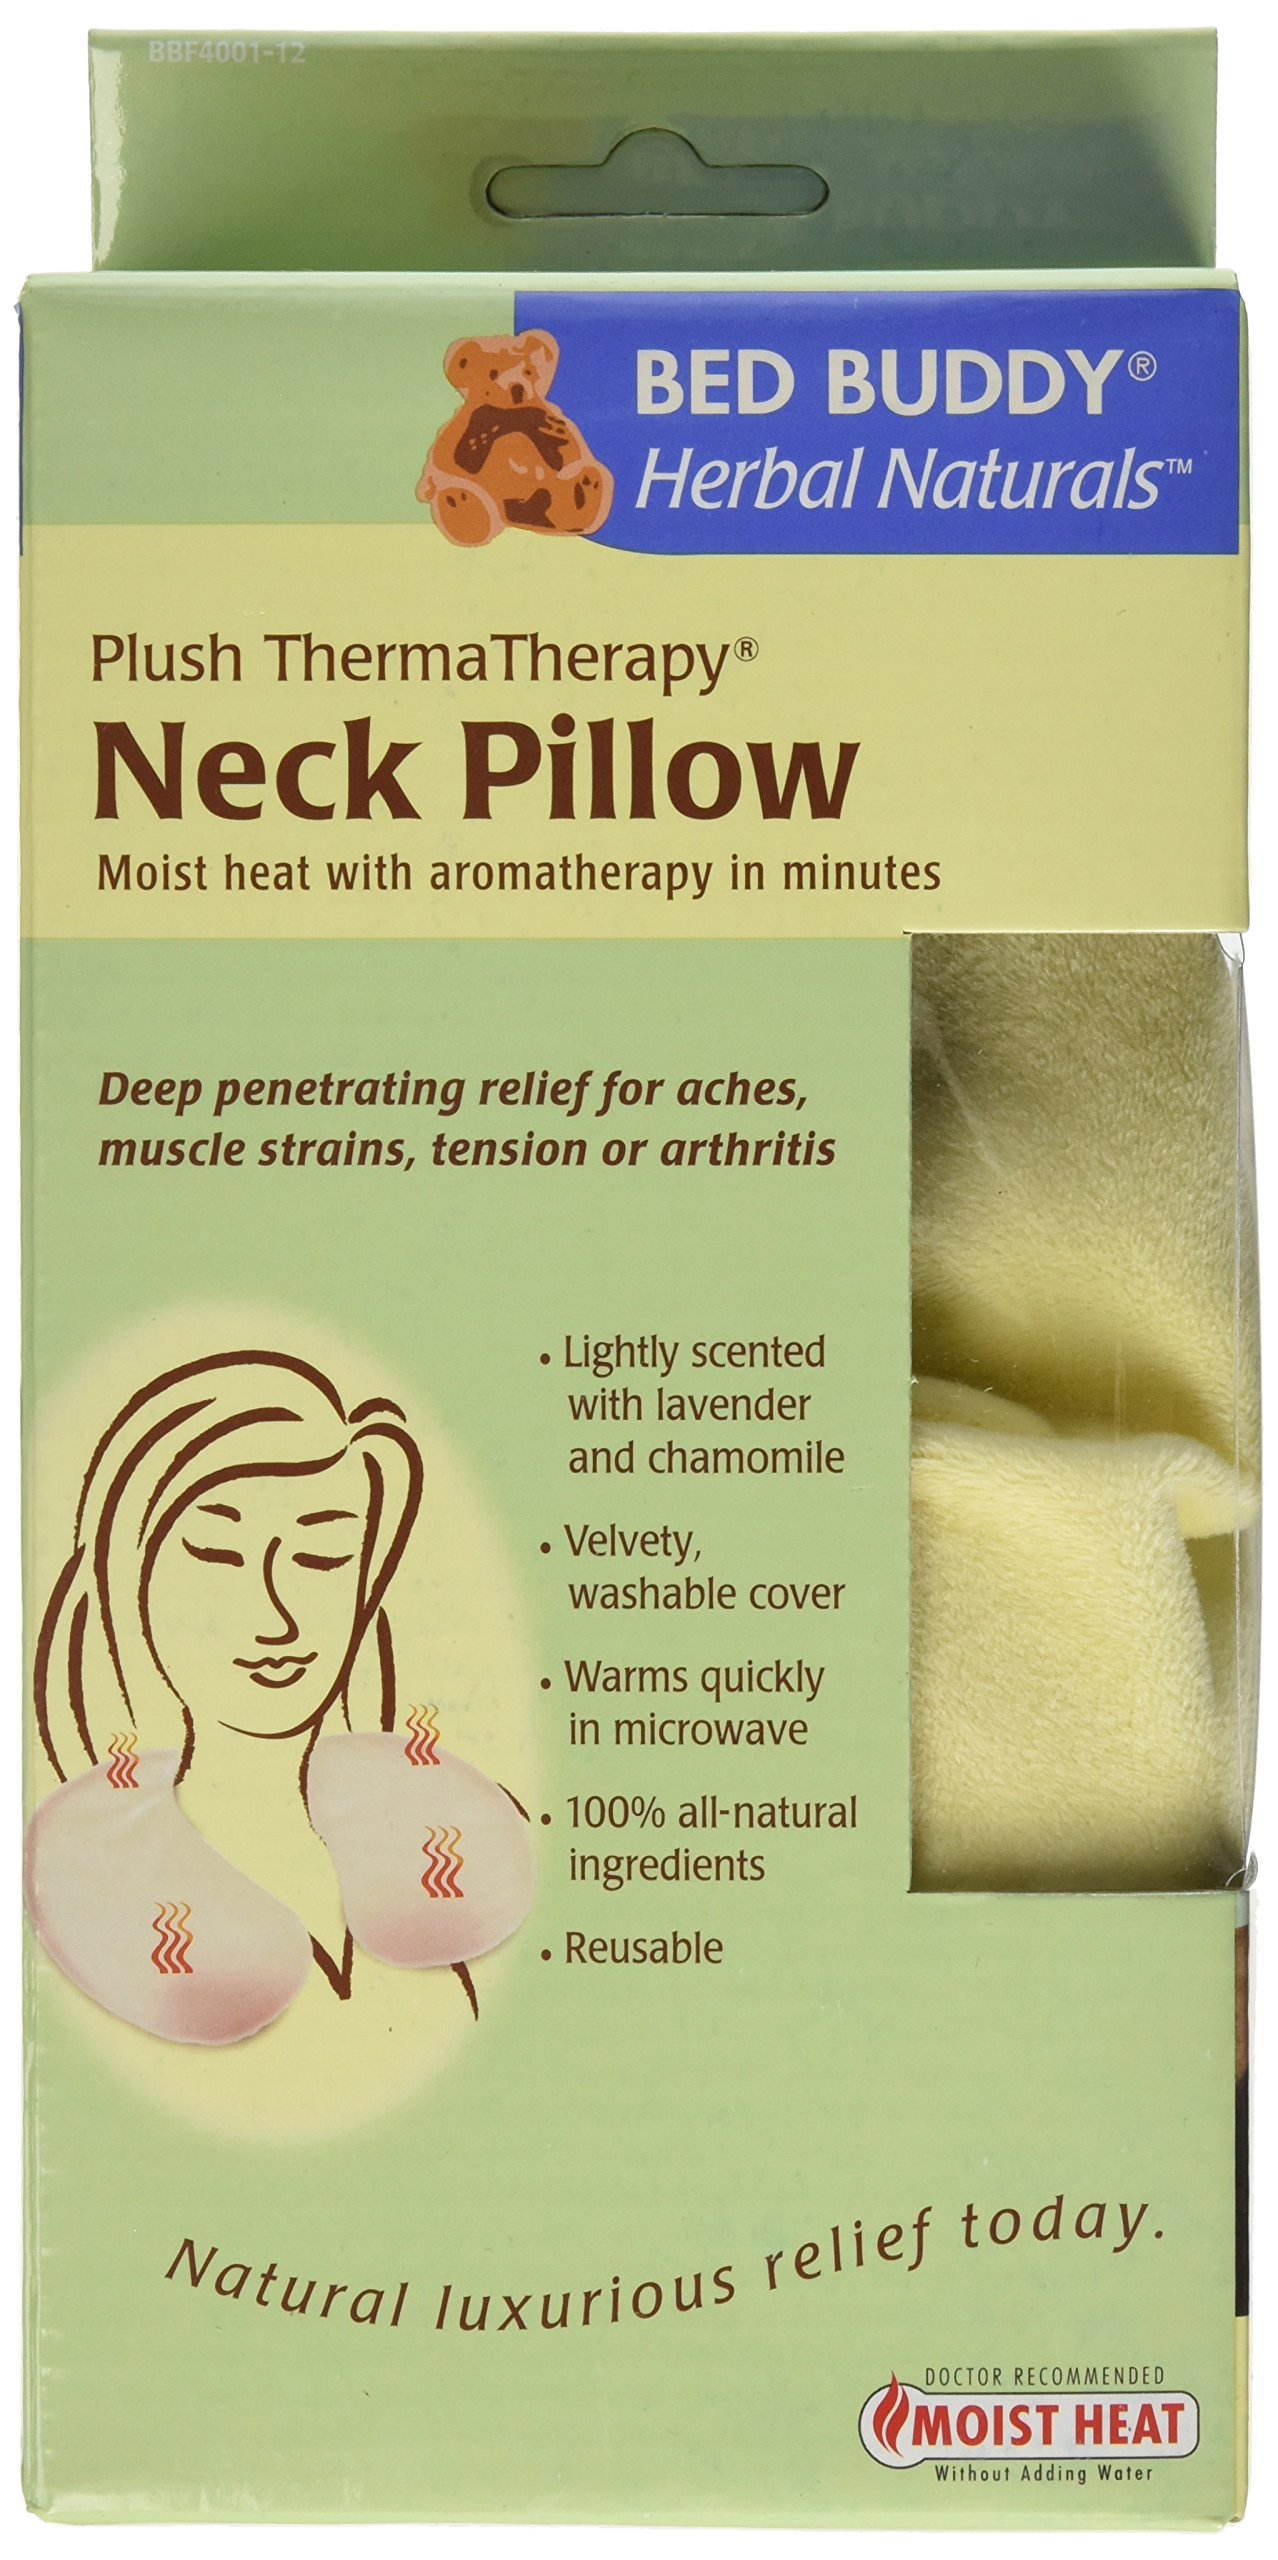 Bed Buddy Neck Pillow with Moist Heat and Aromatherapy